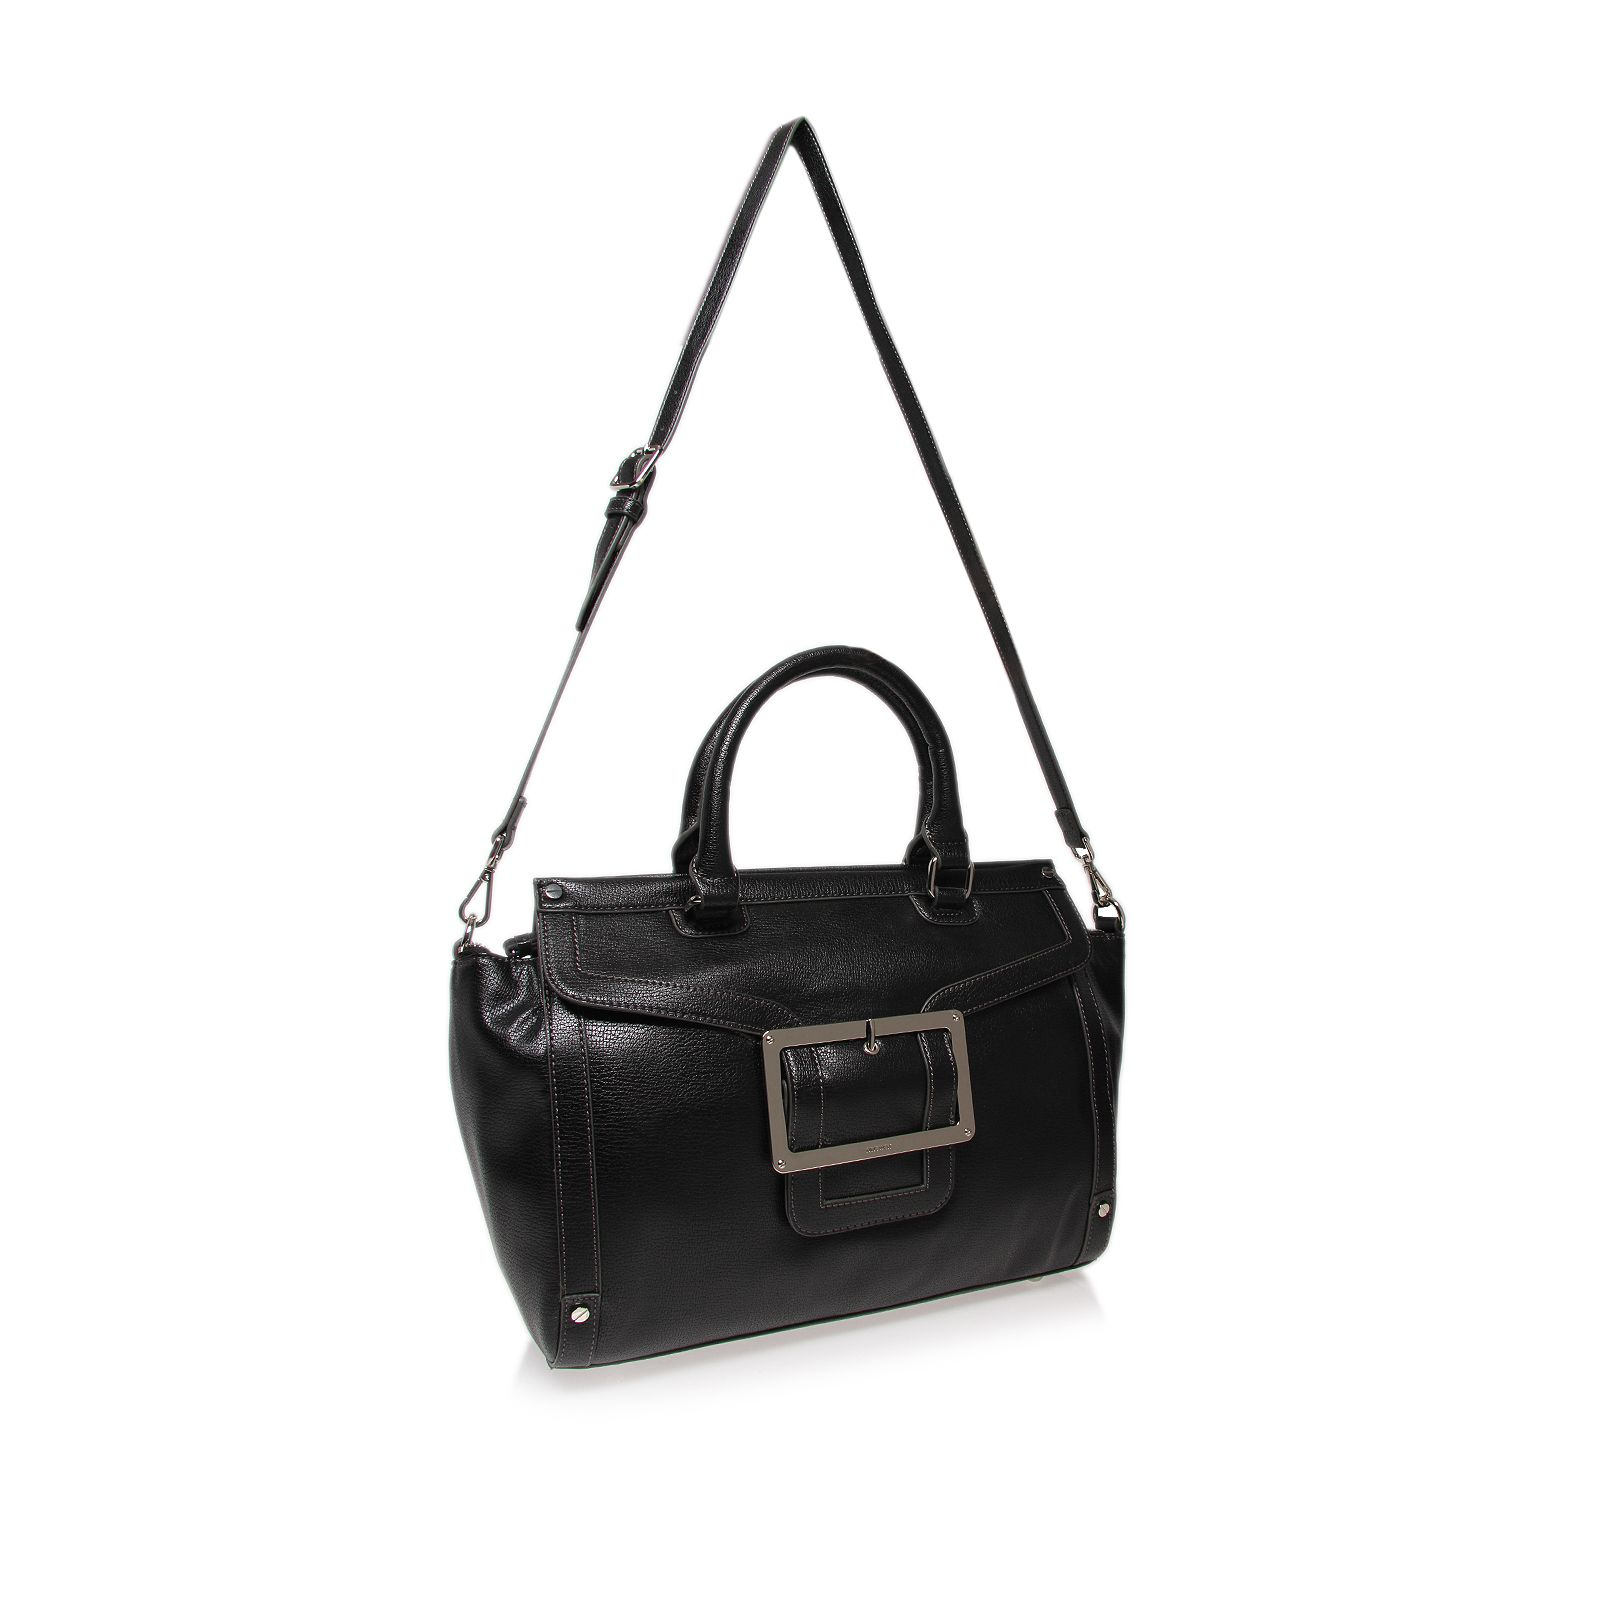 Framedin black satchel